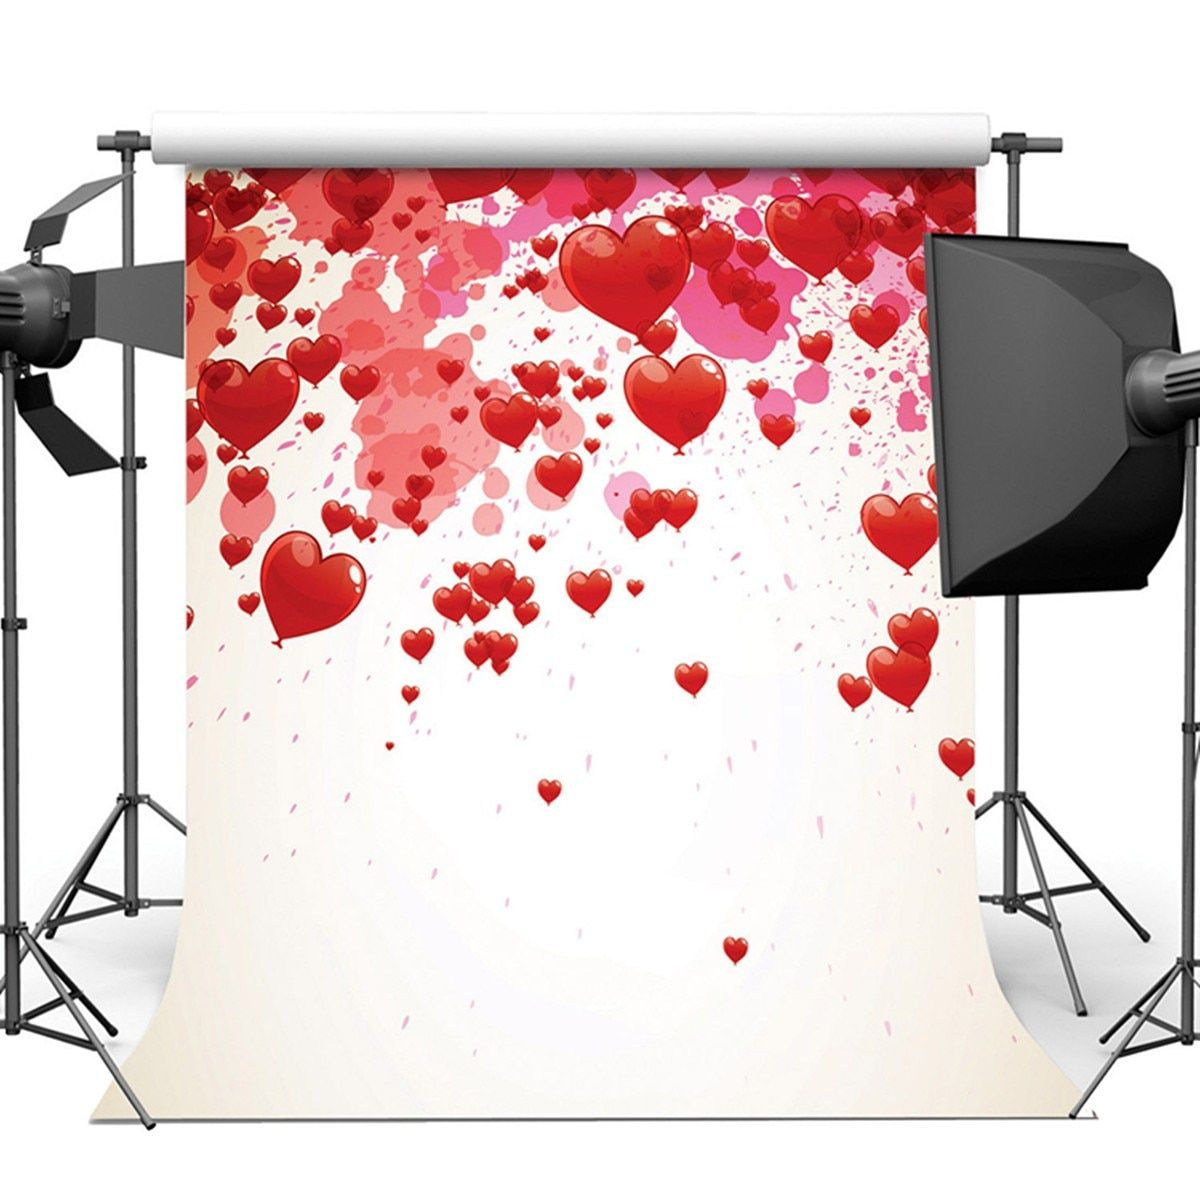 8X8FT Vinyl Love Heart Photography Background Studio Backdrop Wedding Photo Prop 2017 New Arrival